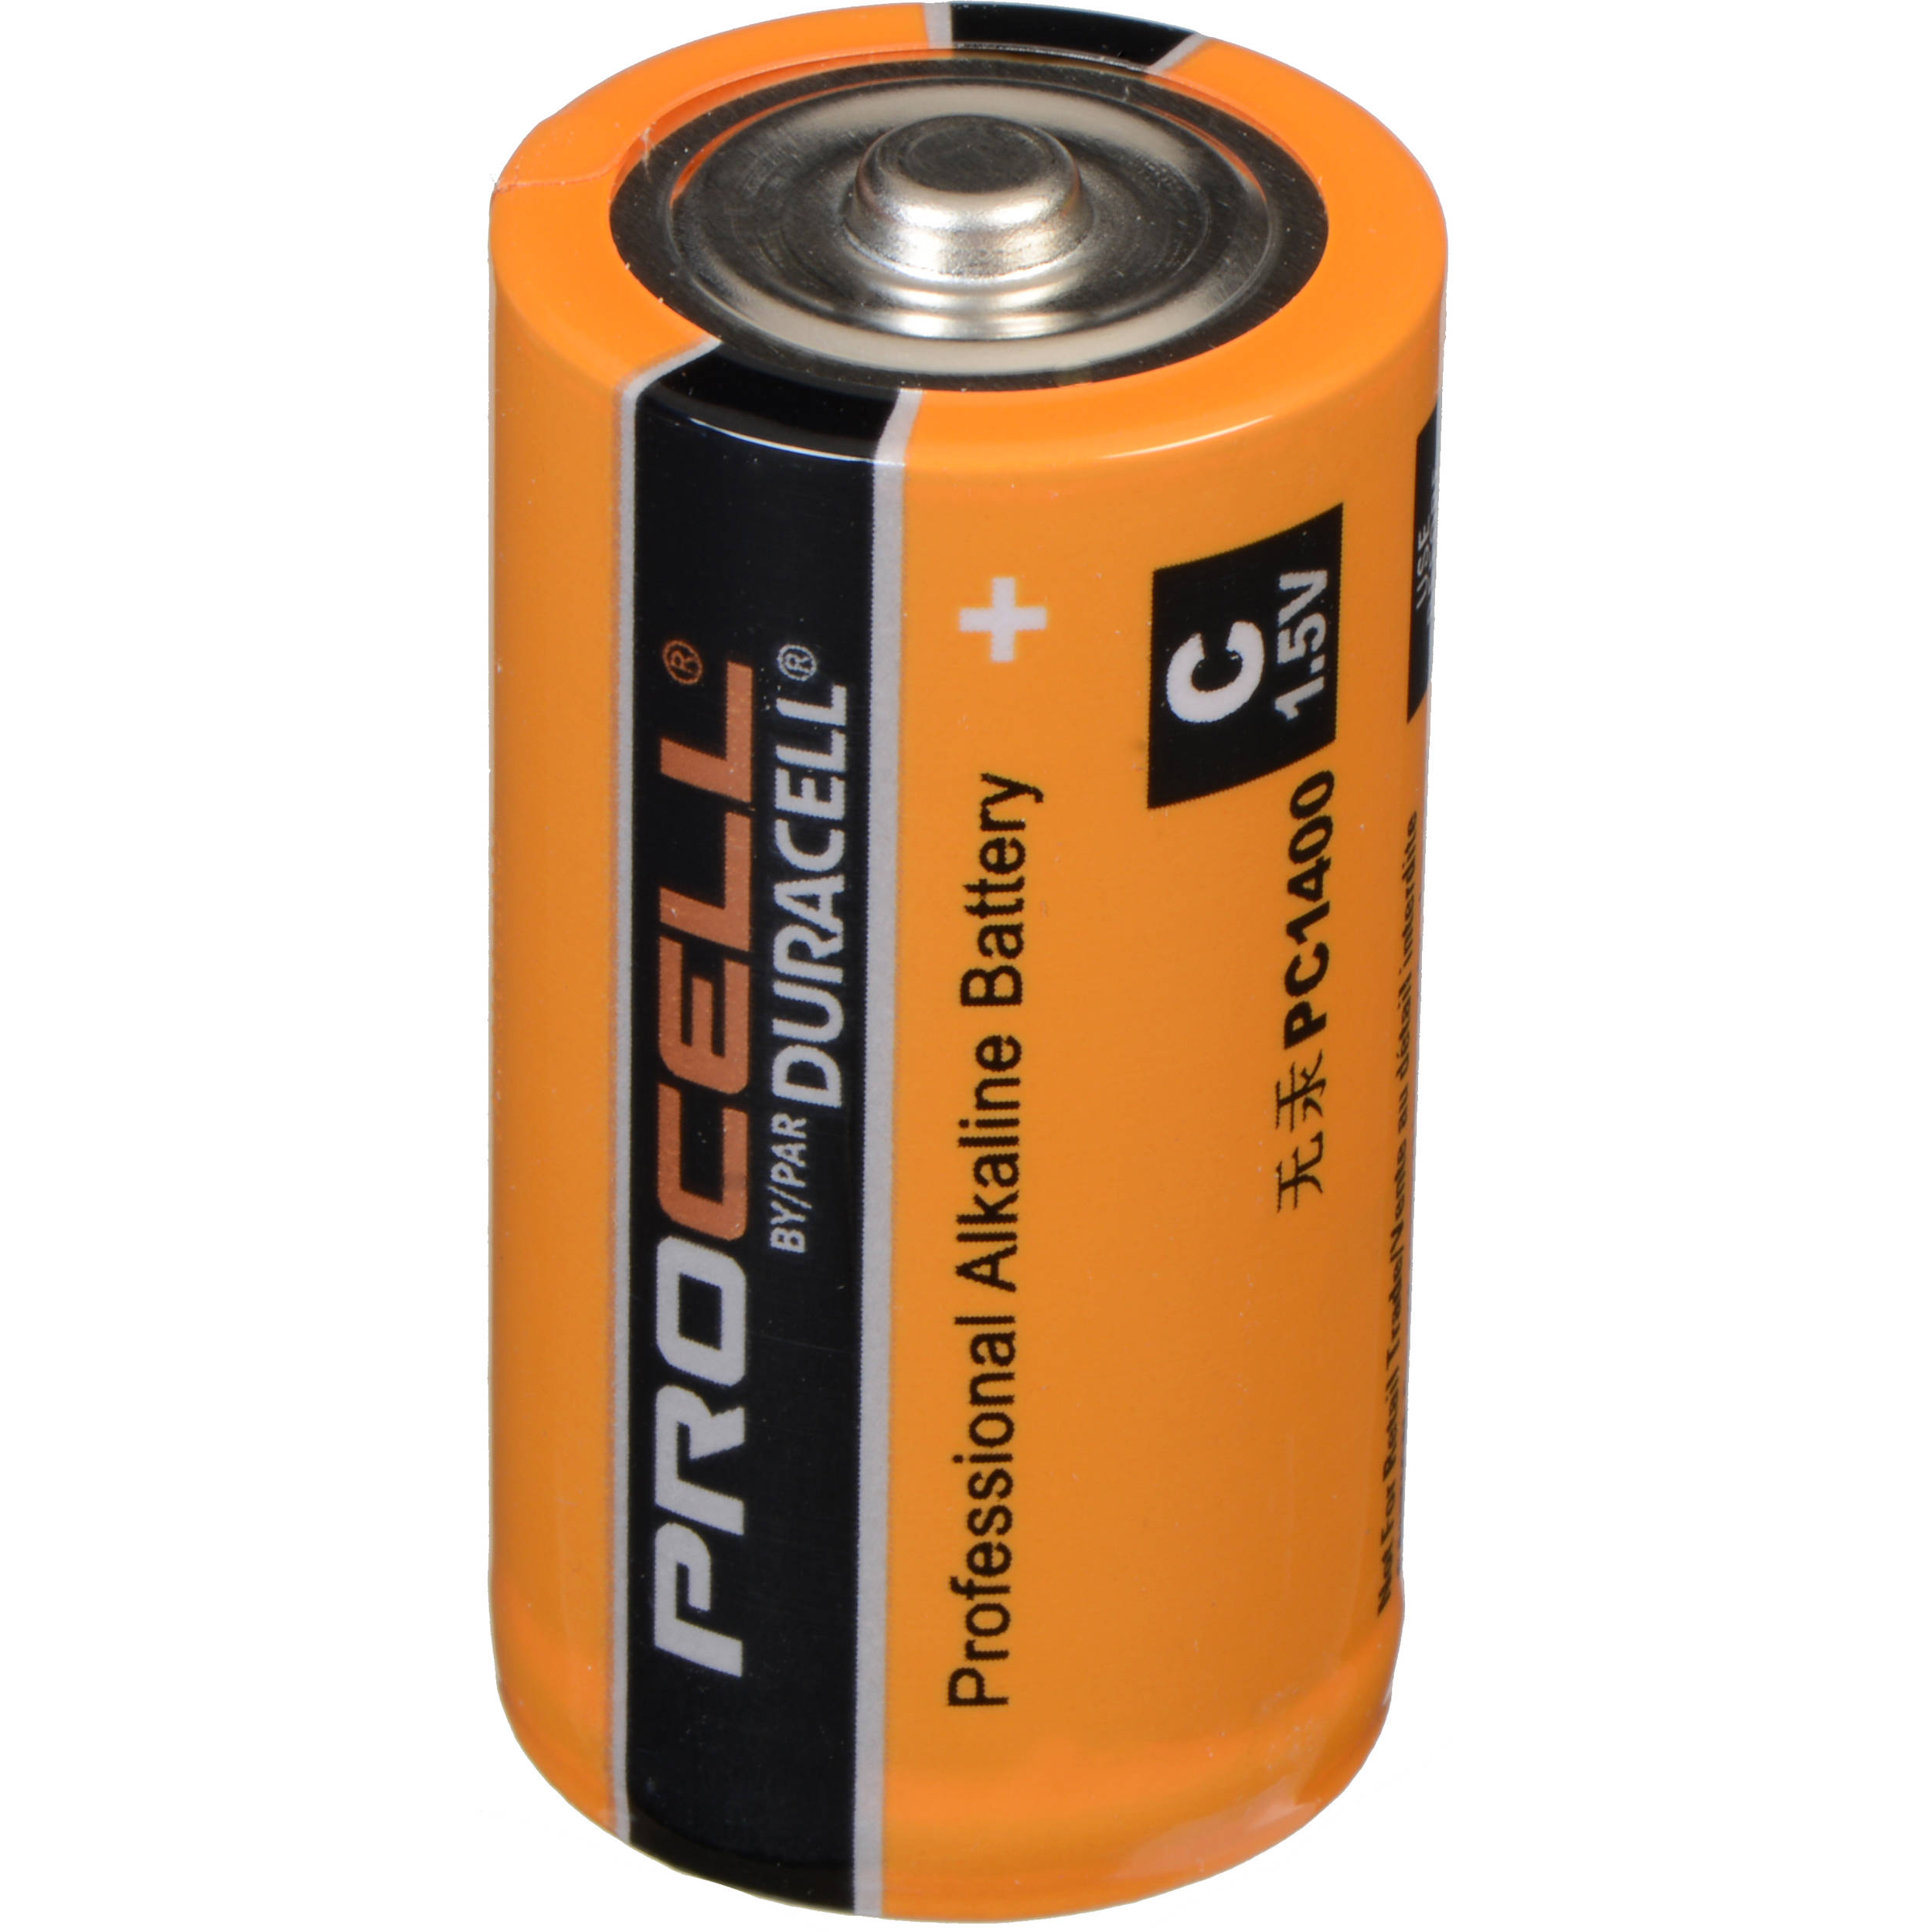 Duracell C Procell 1.5V Alkaline Batteries (12 Pack) PC1400 B&H